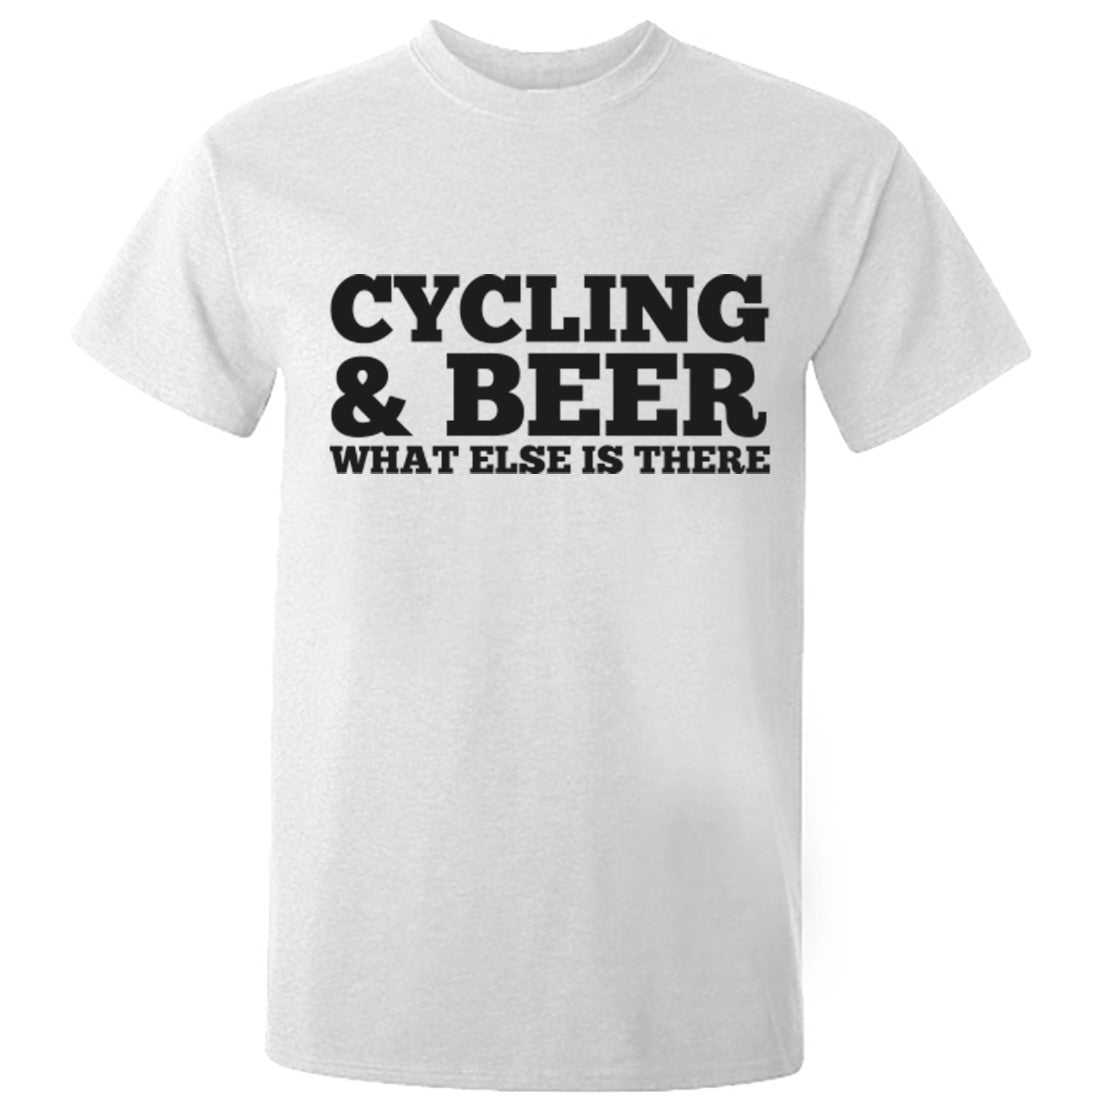 Cycling And Beer What Else Is There Unisex Fit T-Shirt K0679 - Illustrated Identity Ltd.